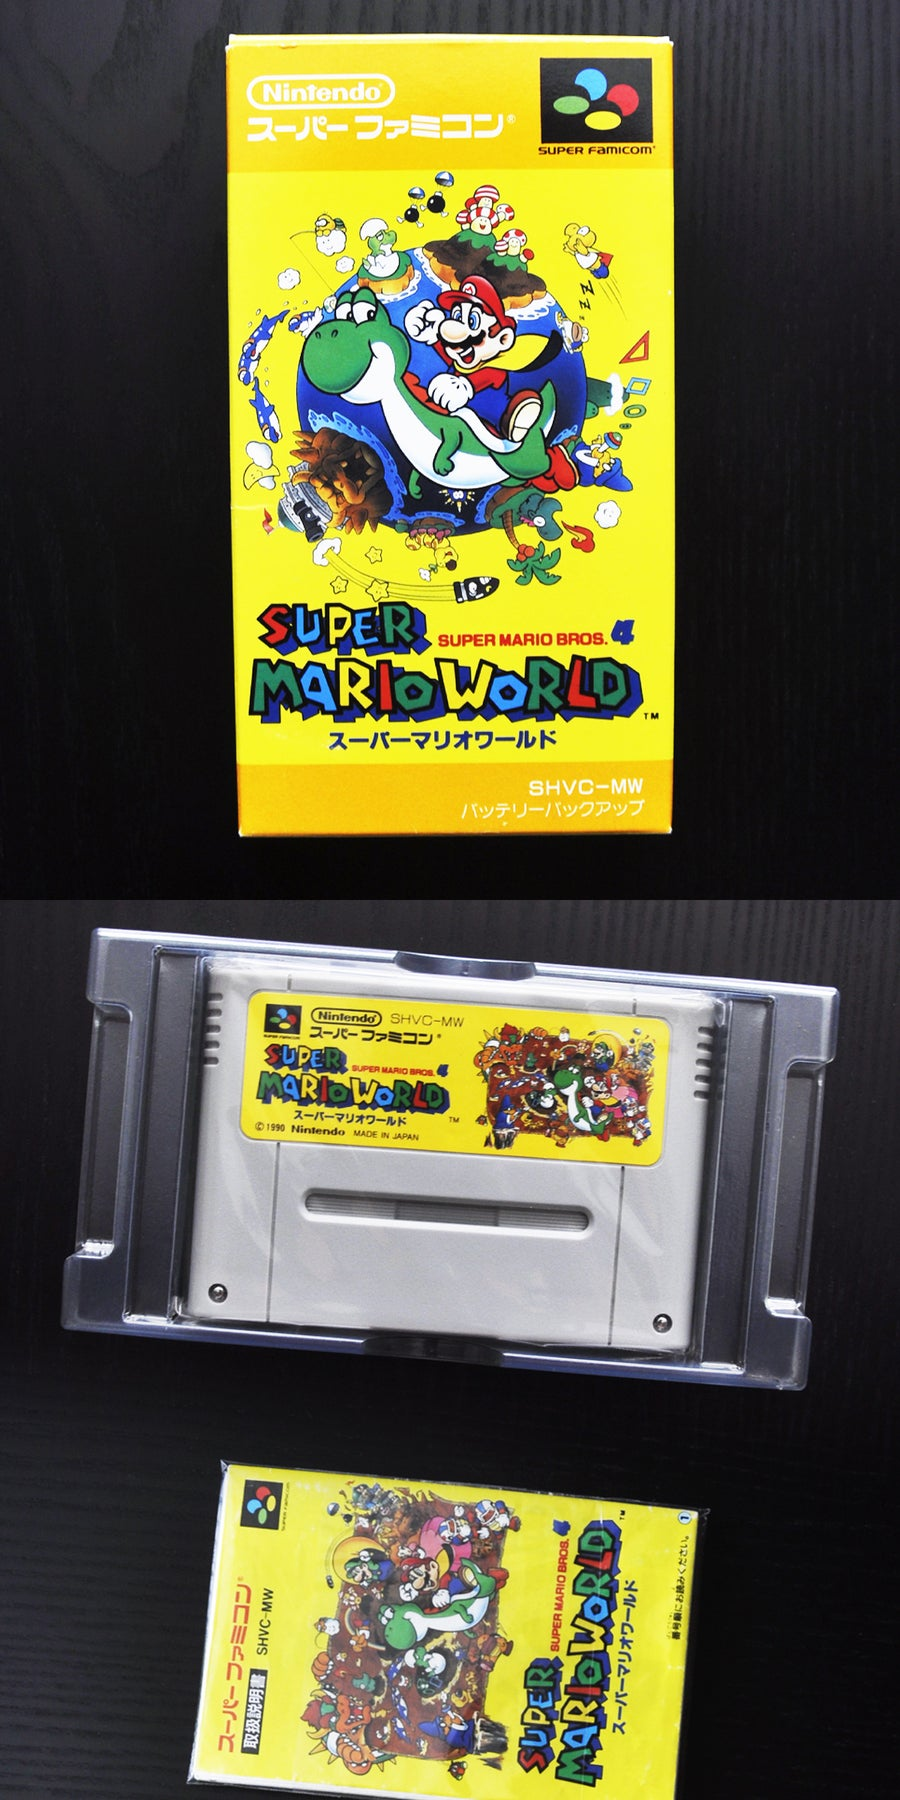 Image of SUPER MARIO WORLD With BOX, MANUAL AND MAP (Rare) Super Famicom SFC